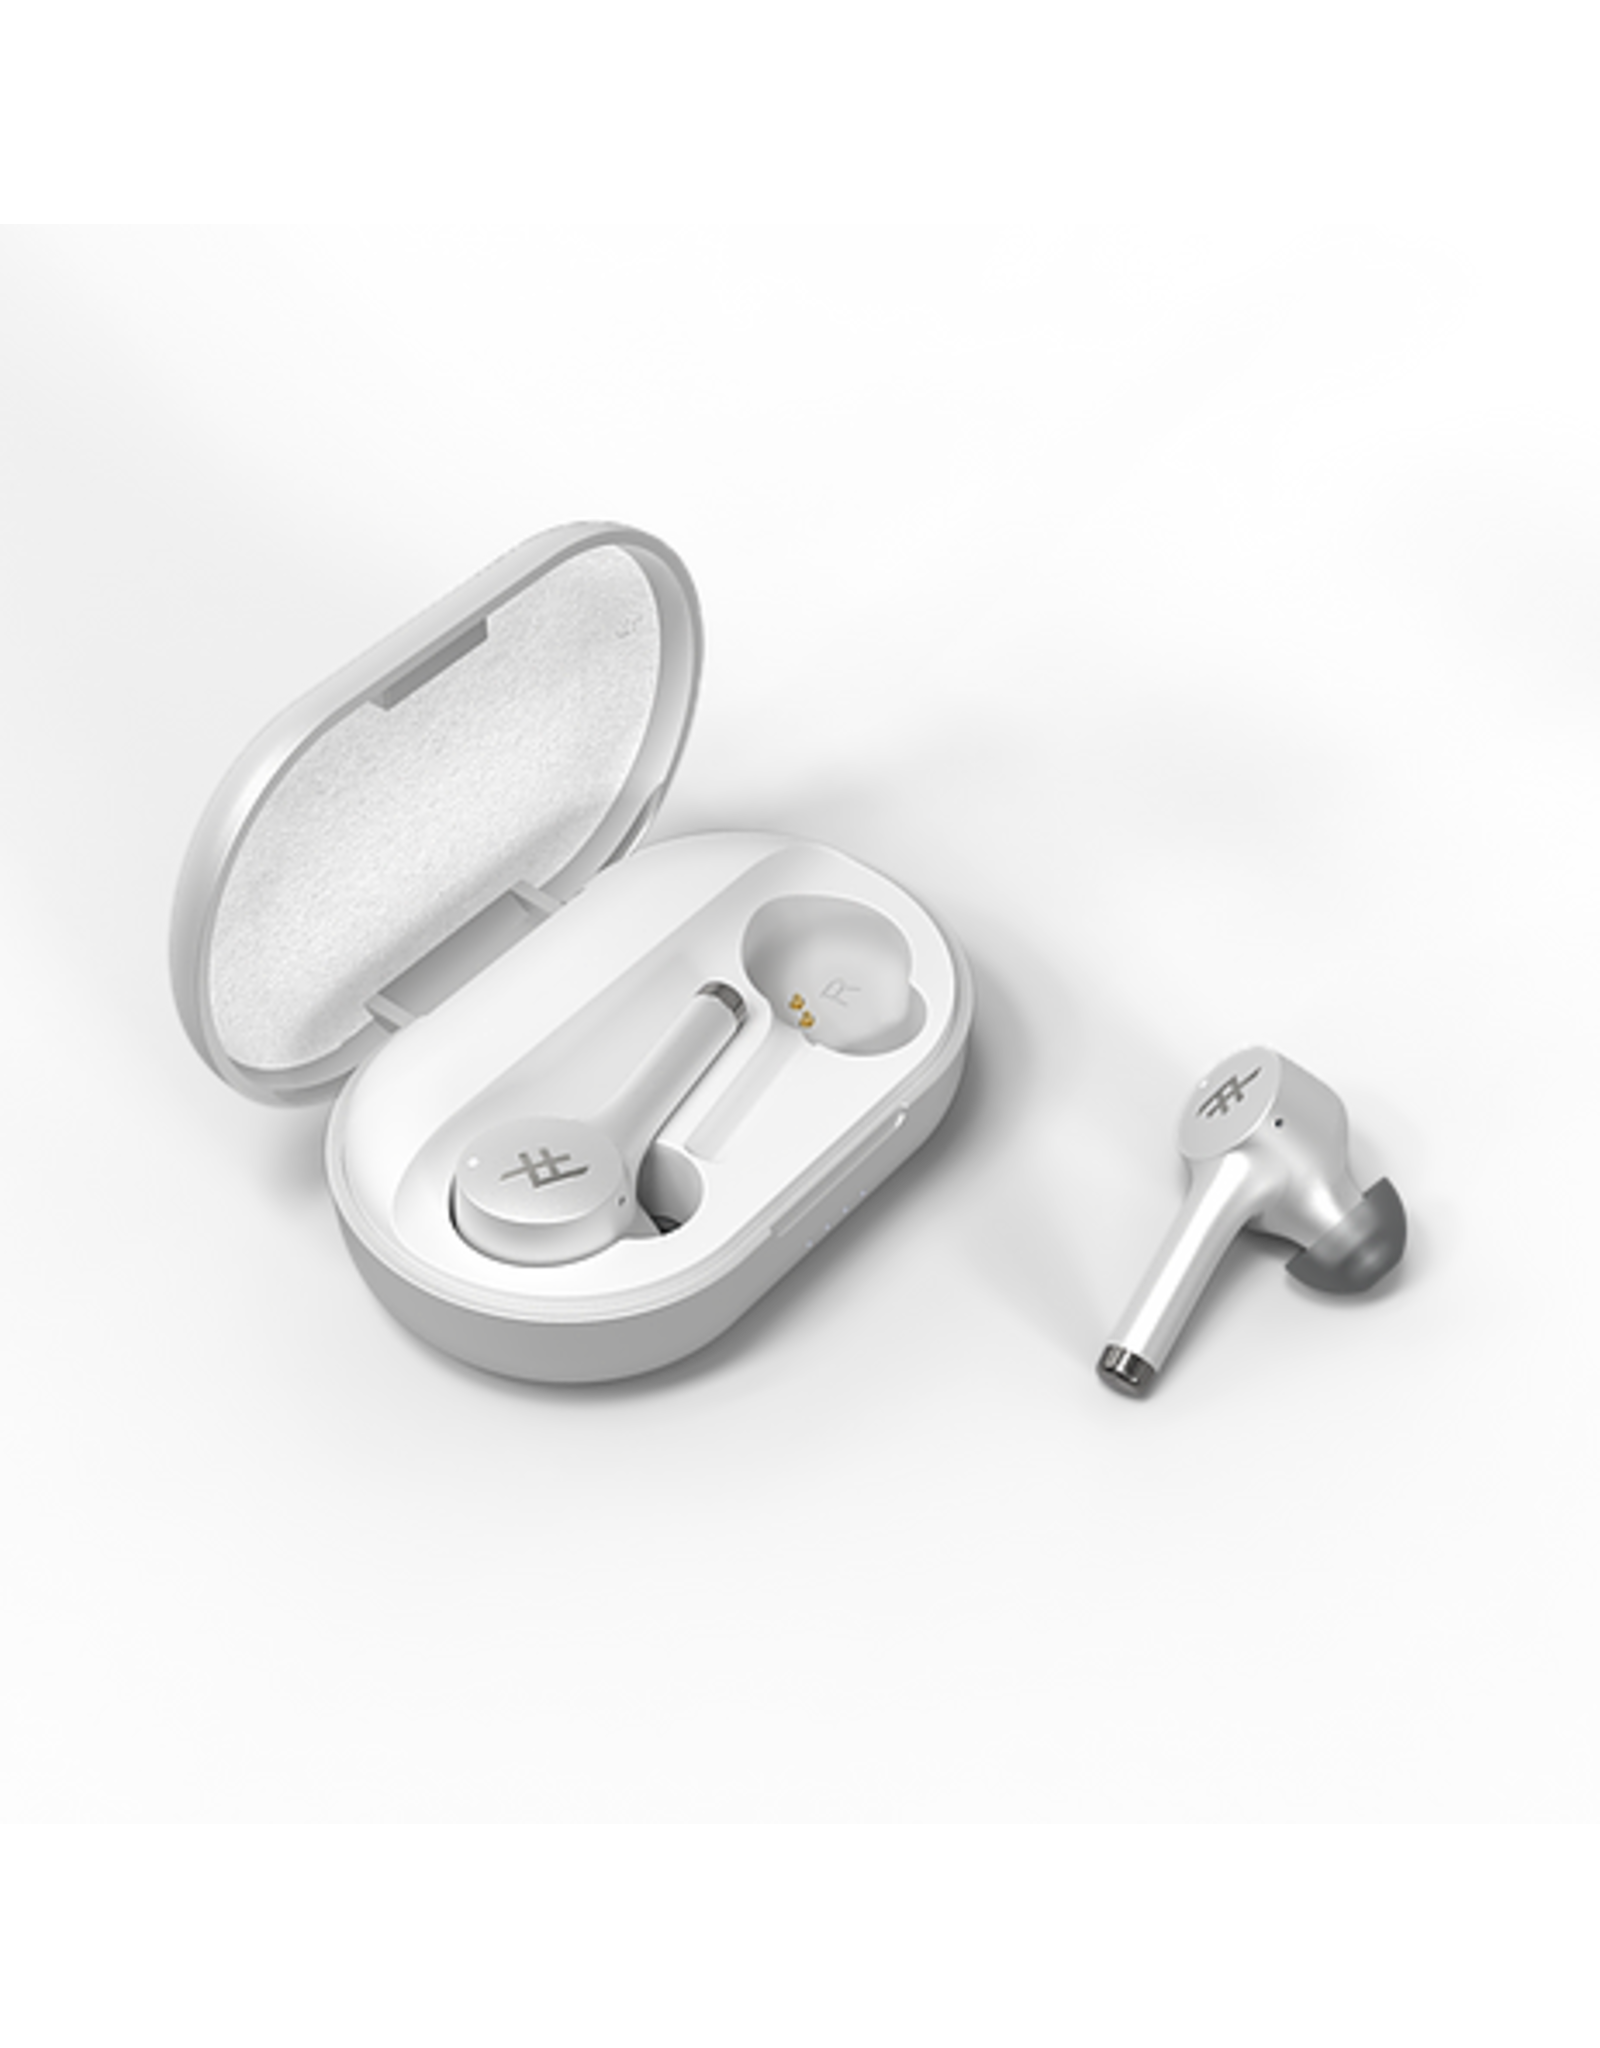 Zagg iFrogz AIRTIME PRO Truly Wireless Stem Earbuds + Charging Case - White